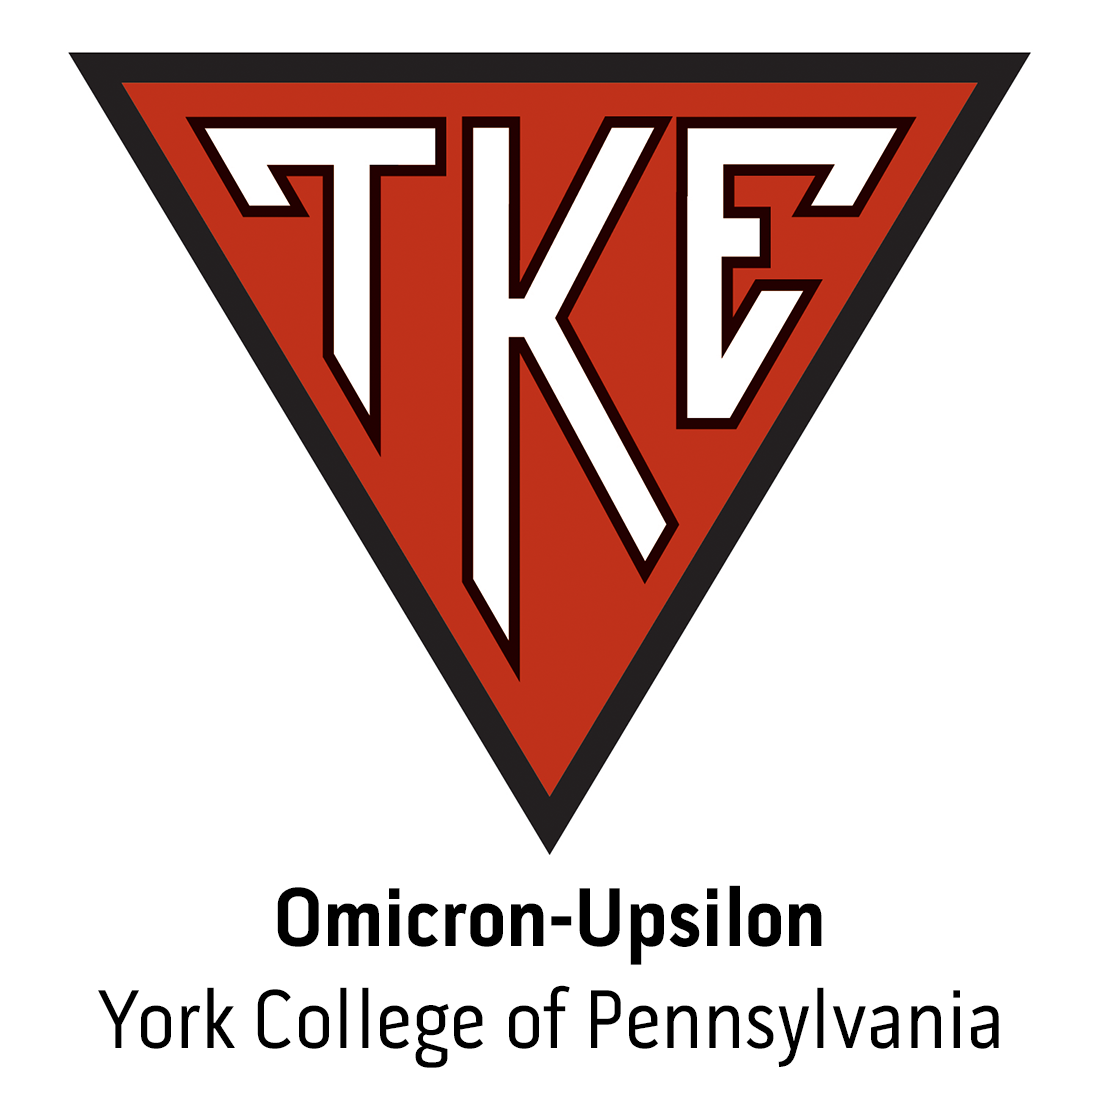 Omicron-Upsilon Chapter at York College of Pennsylvania